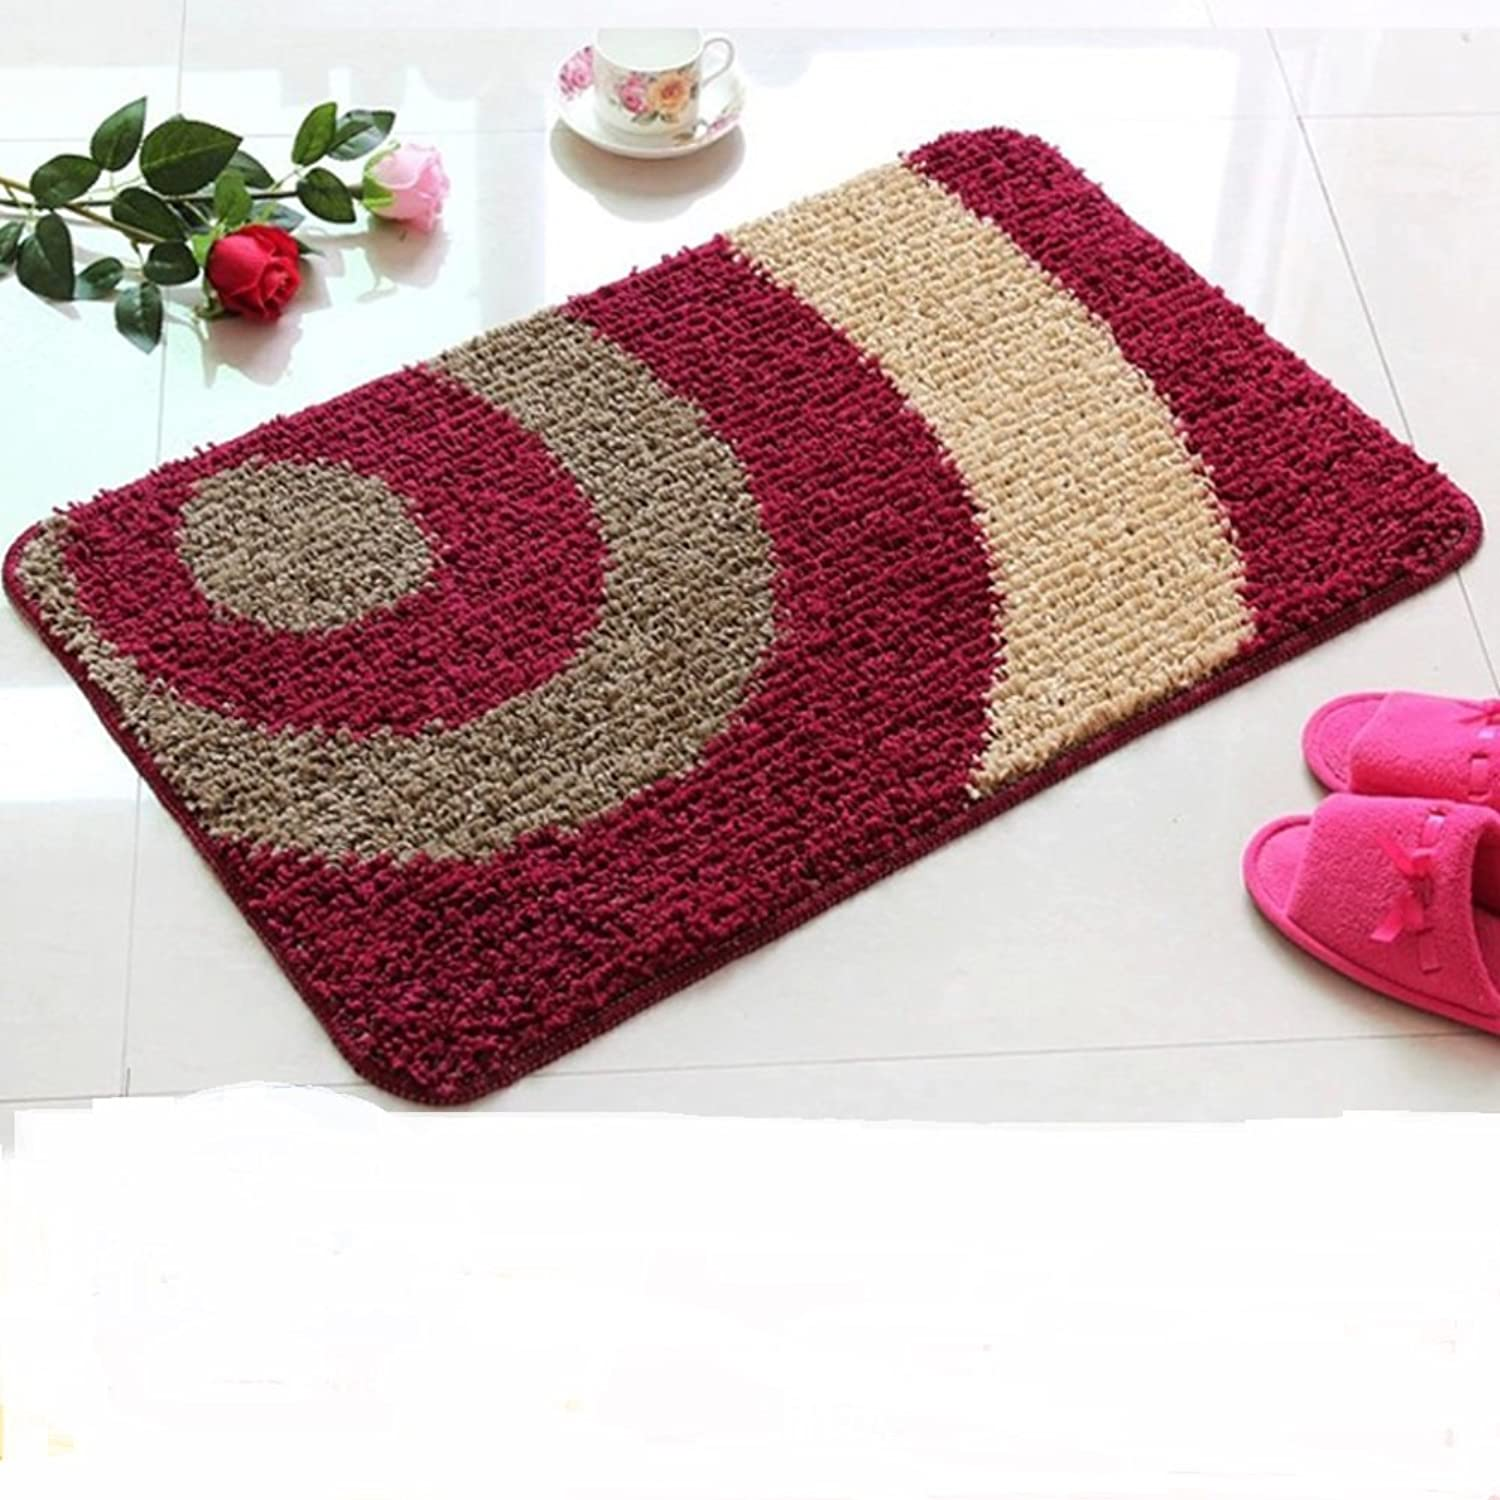 Door mats mattresses Kitchen foyers mats Non-Slip mats-C 80x110cm(31x43inch)